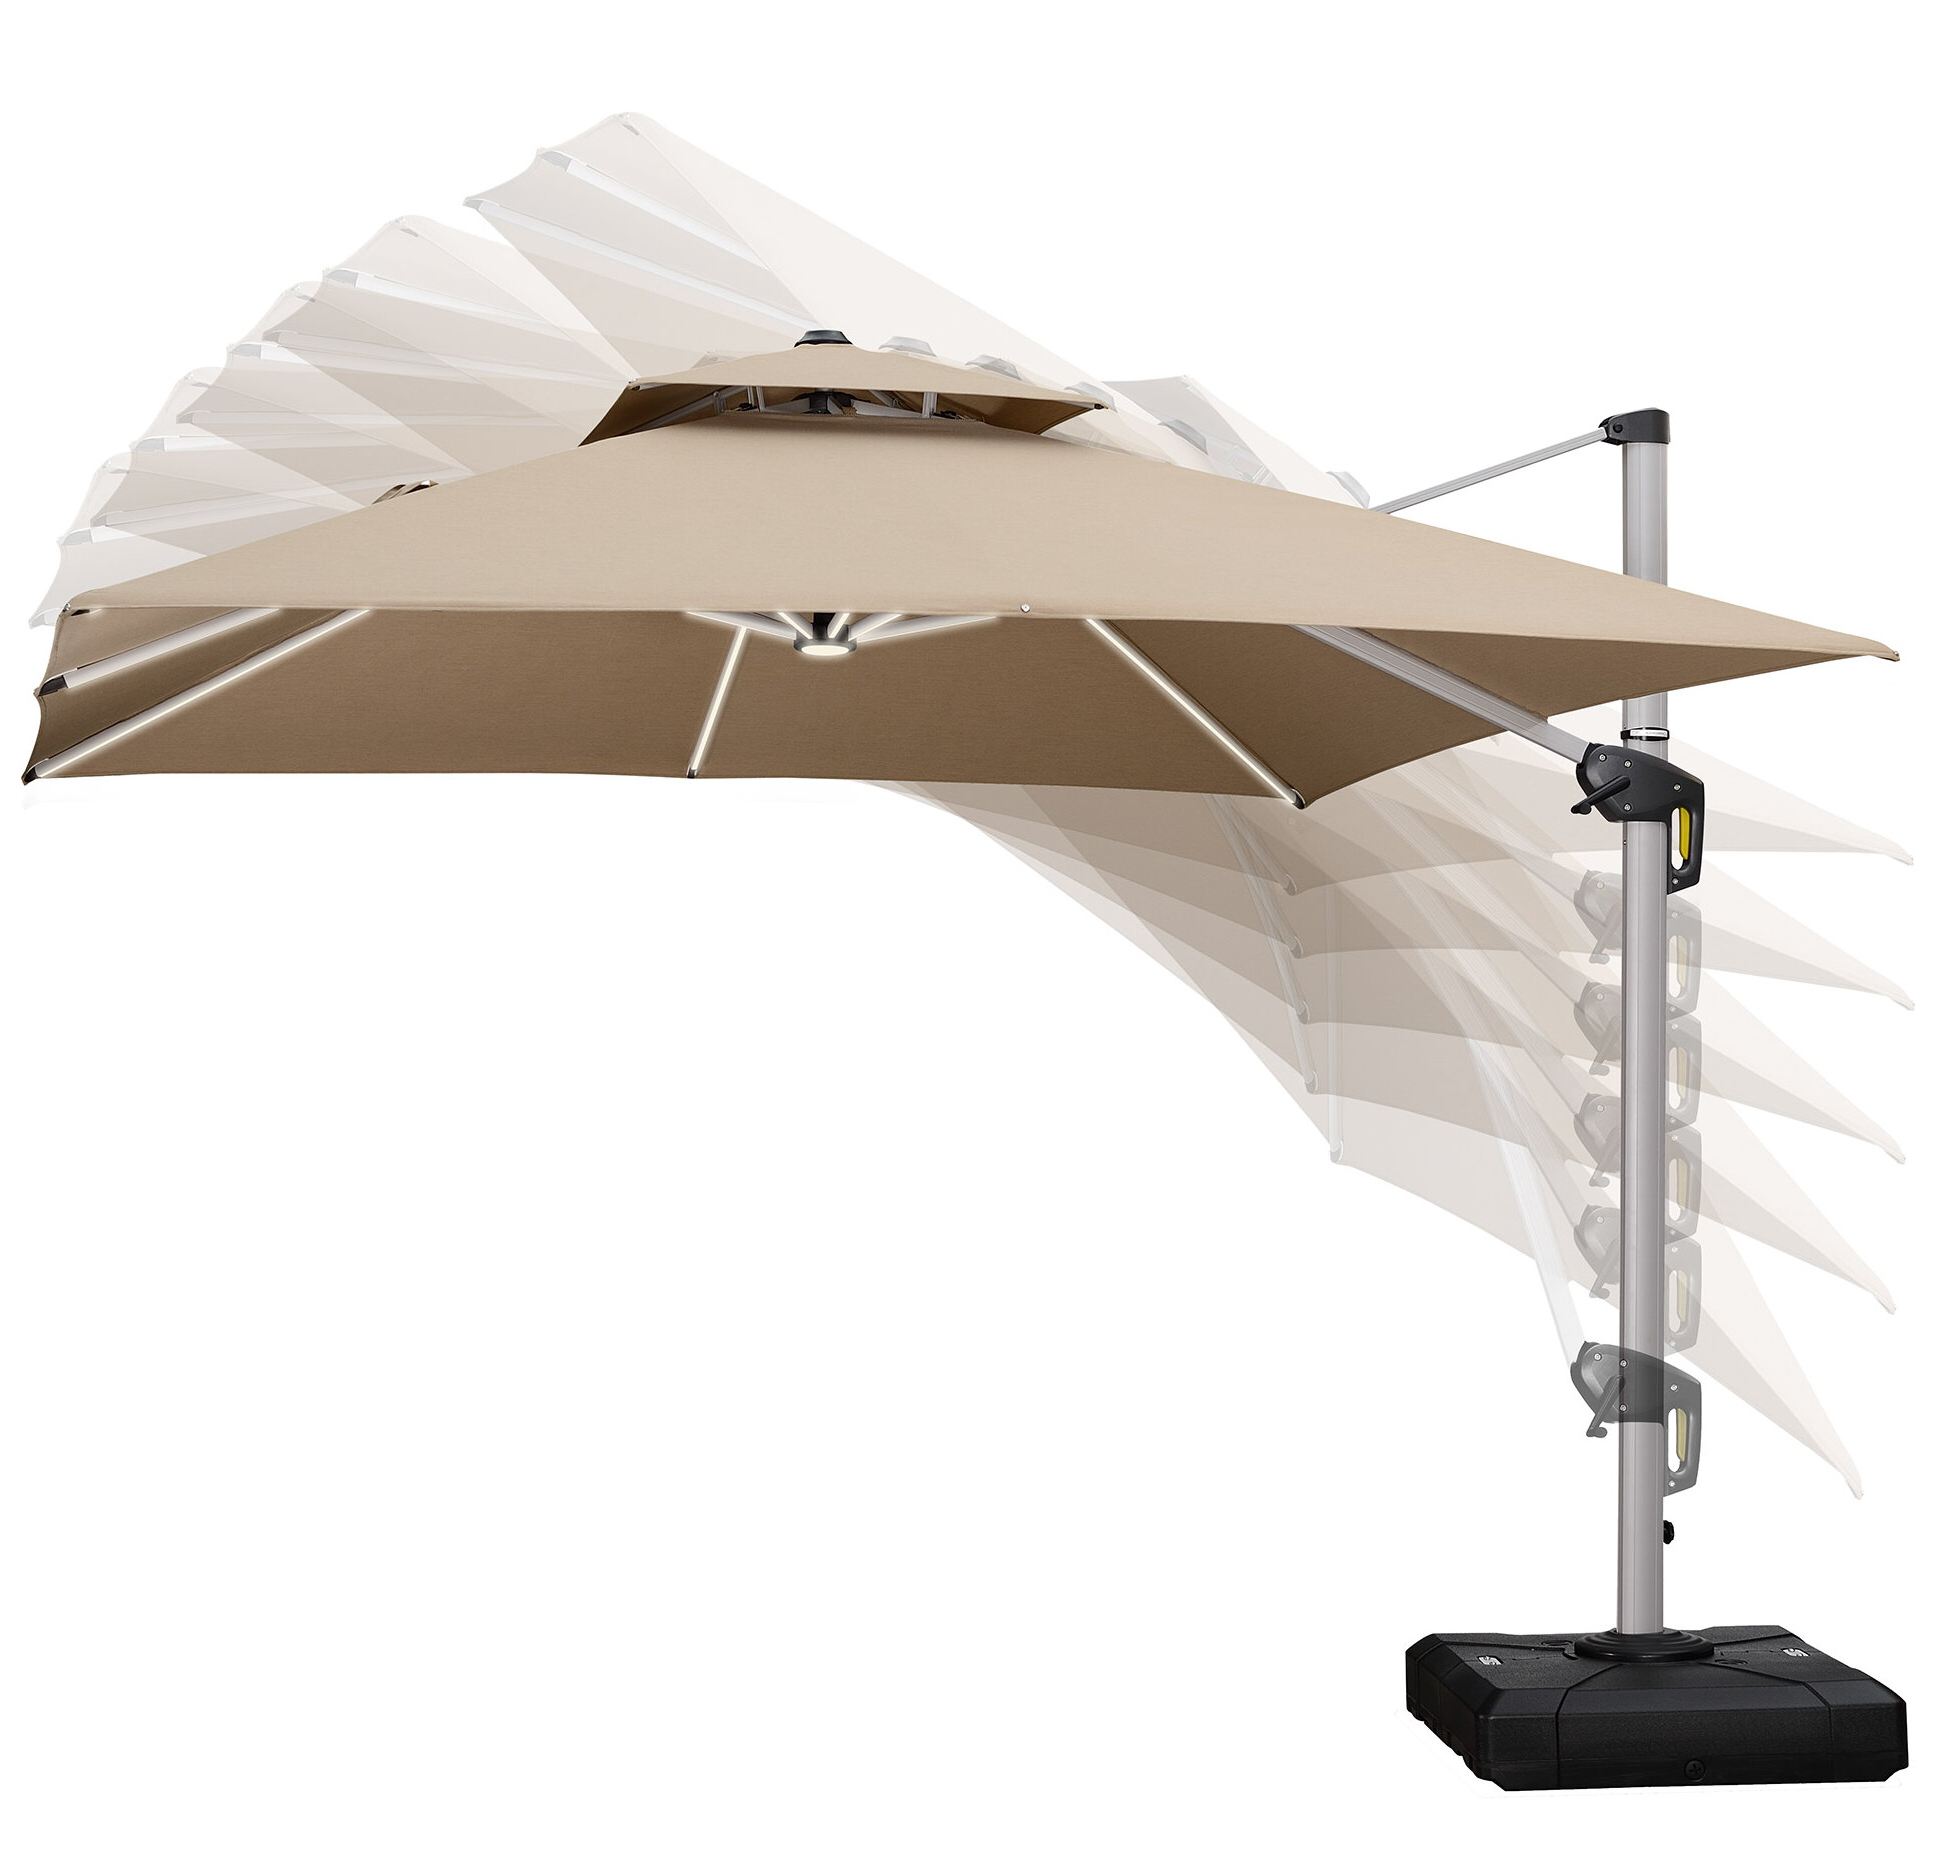 Dermott 10' Square Cantilever Umbrella With Regard To Best And Newest Voss Cantilever Sunbrella Umbrellas (View 18 of 20)